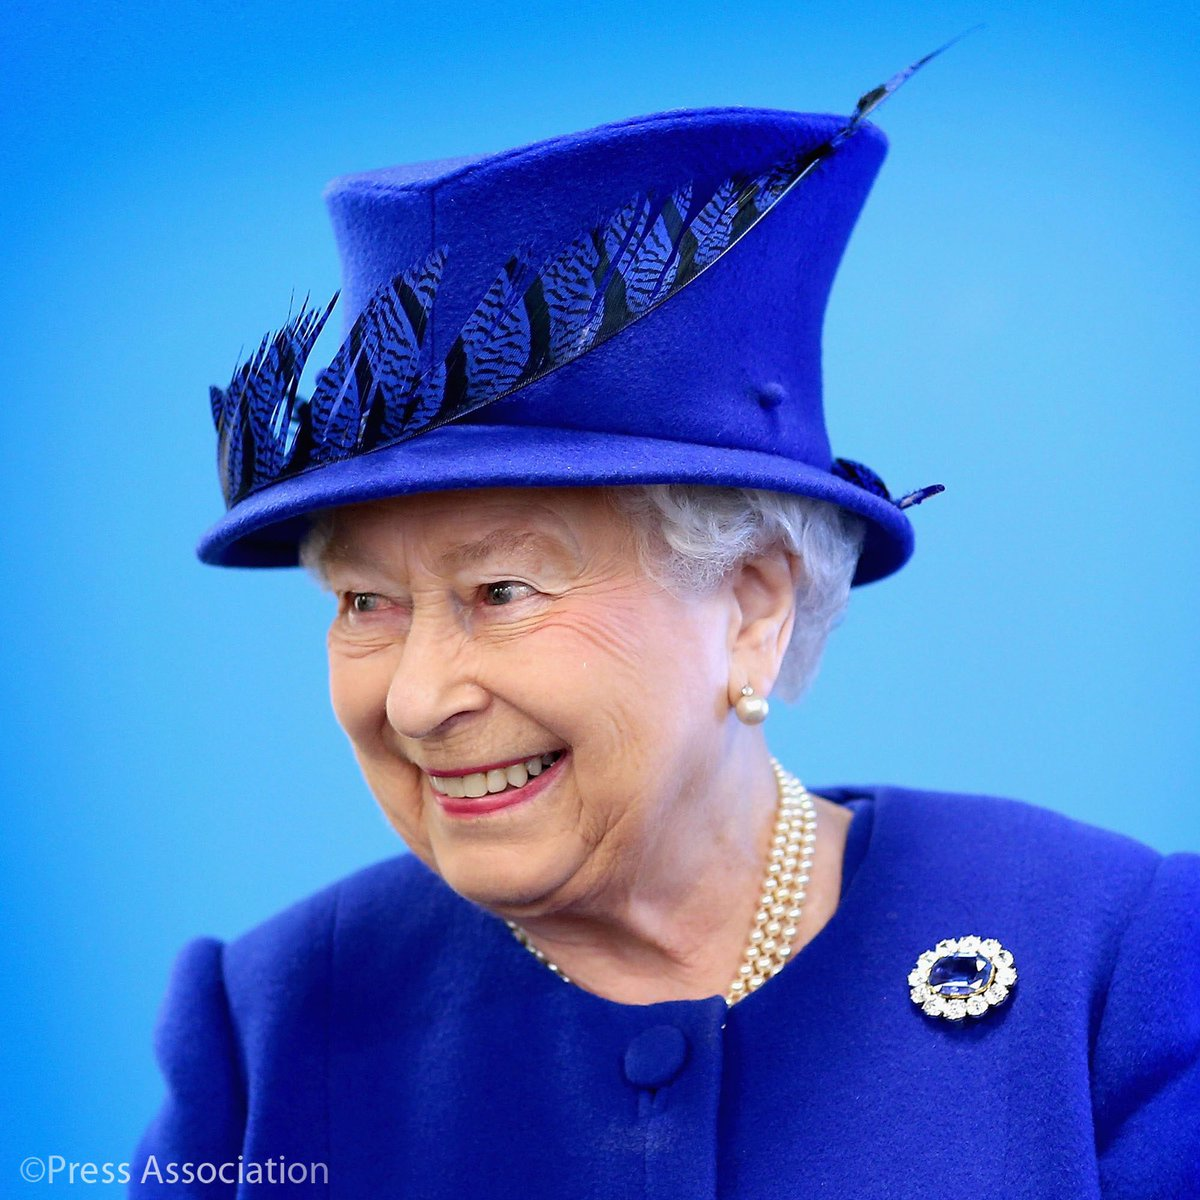 Retweet to wish Her Majesty The Queen a very happy 90th birthday! #Queenat90 #HappyBirthdayYourMajesty